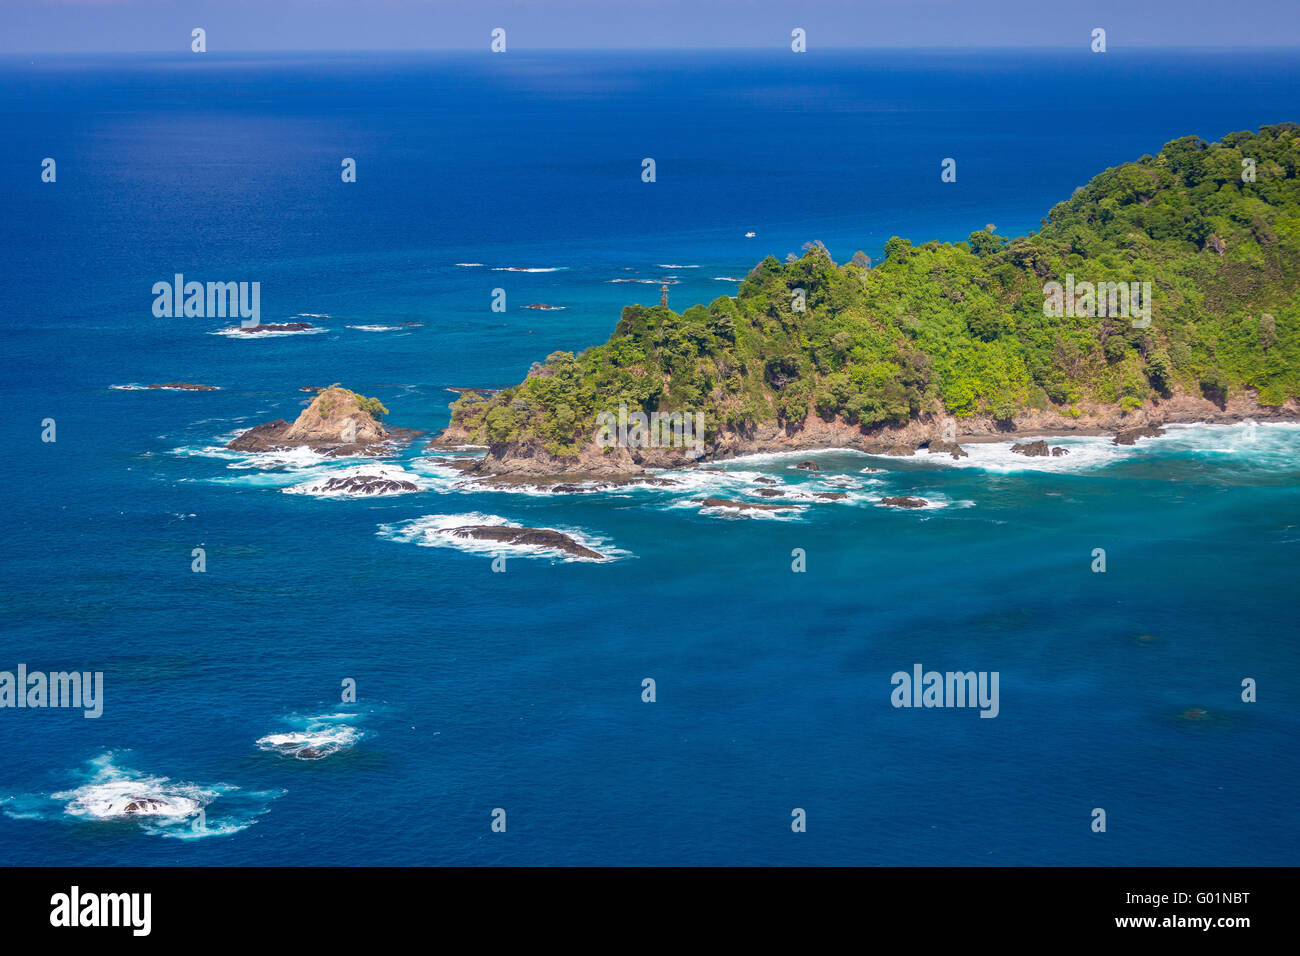 ISLA DEL CANO,, COSTA RICA - Aerial of Cano Island National Park, an Island in Pacific Ocean - Stock Image